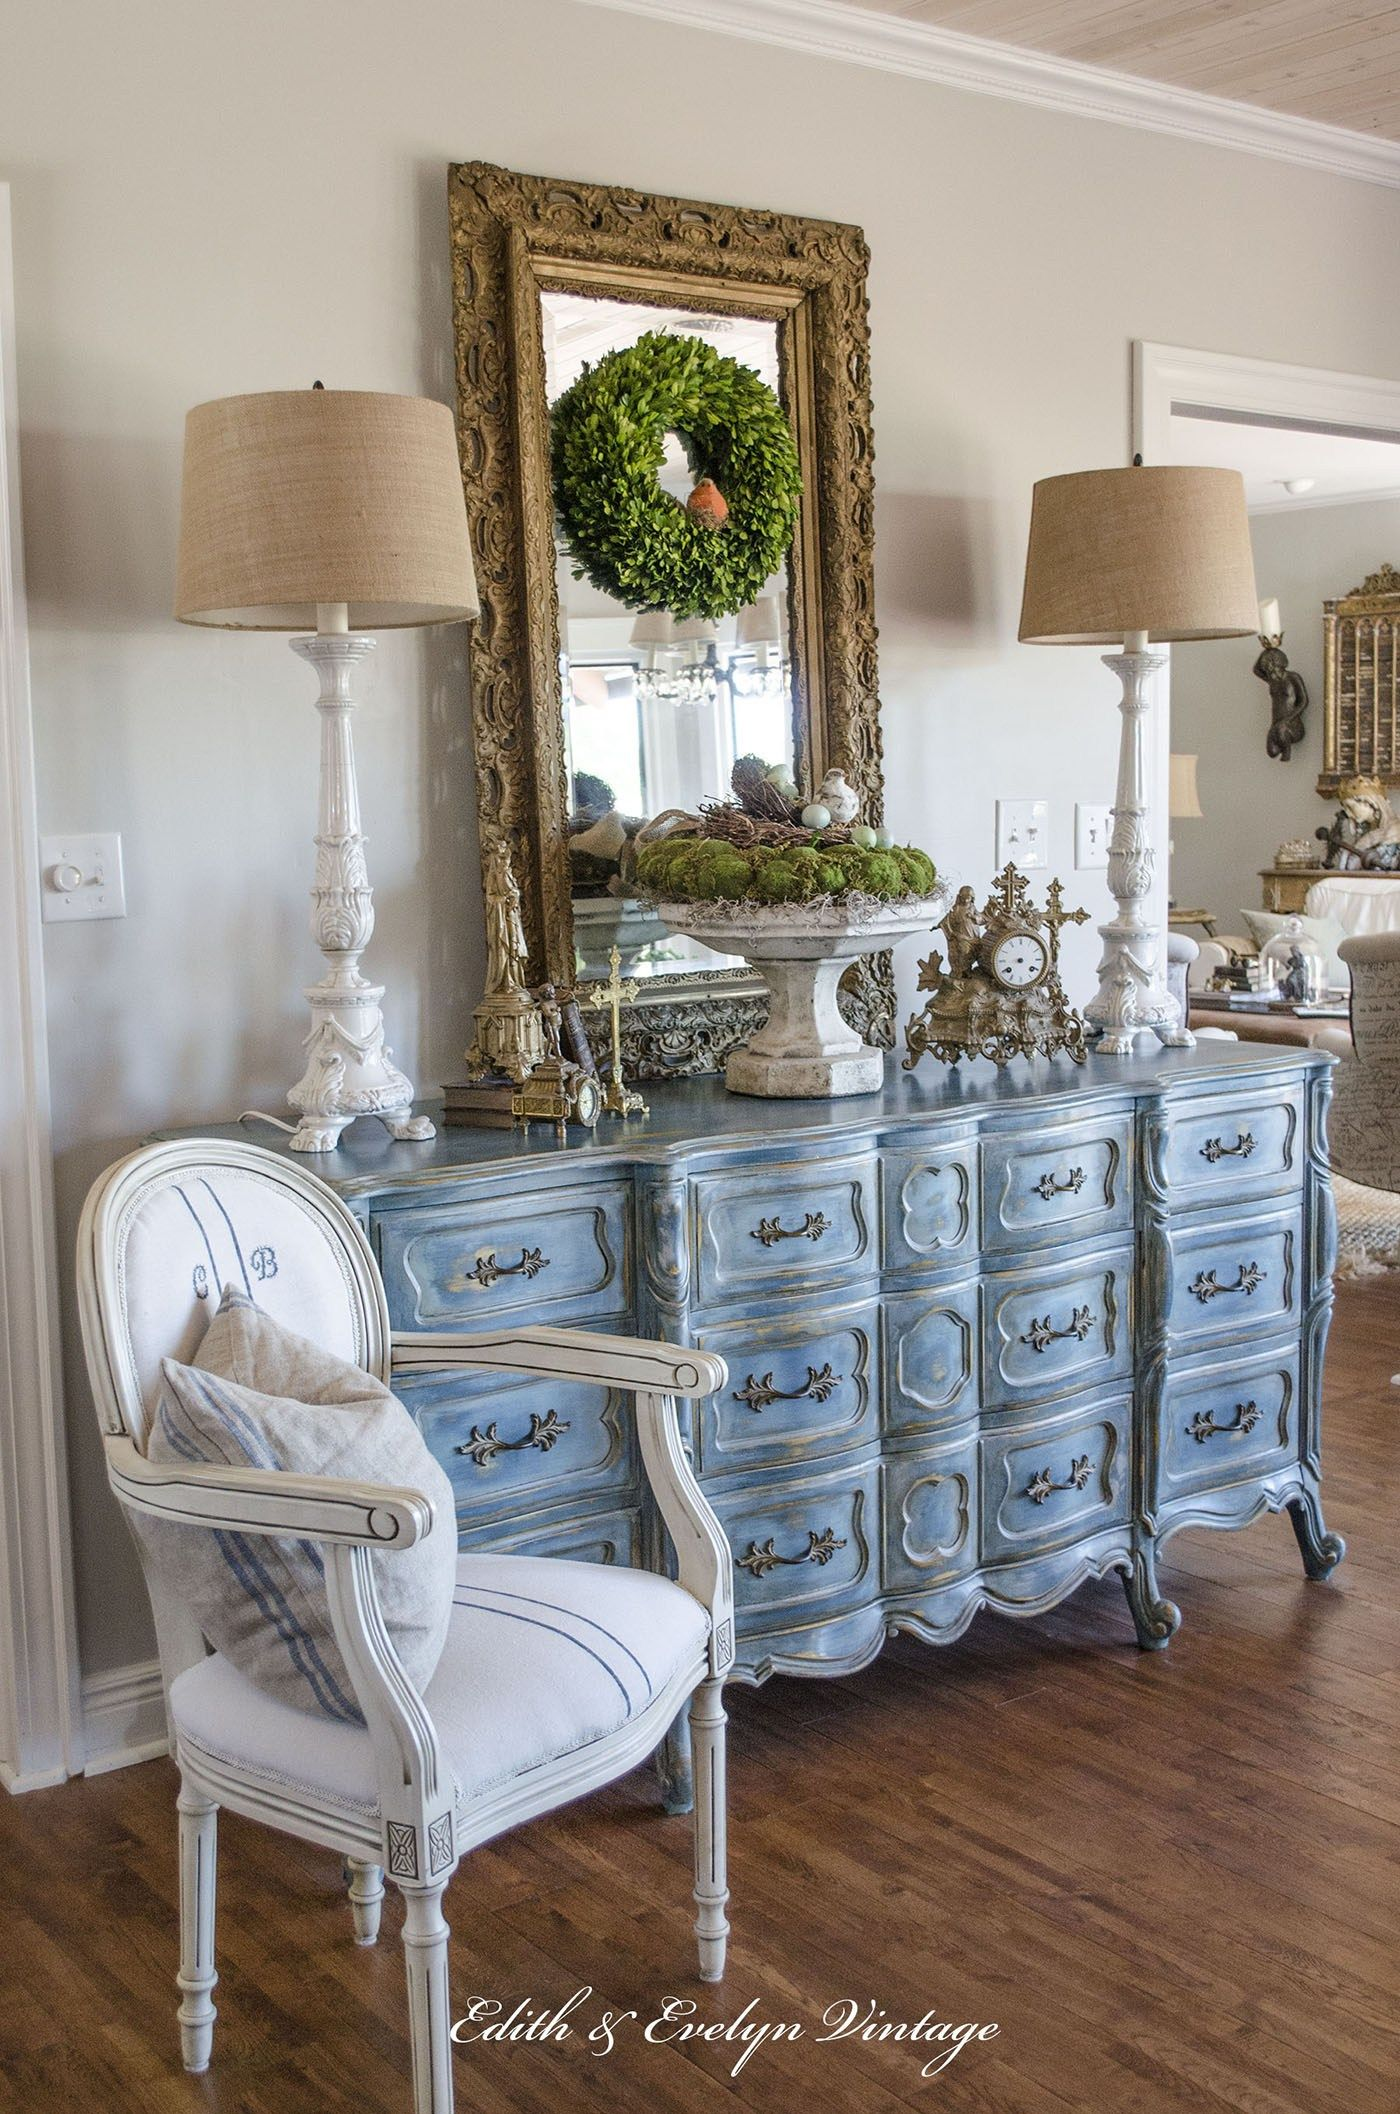 Photo of A Blue French Provincial Dresser | Edith & Evelyn